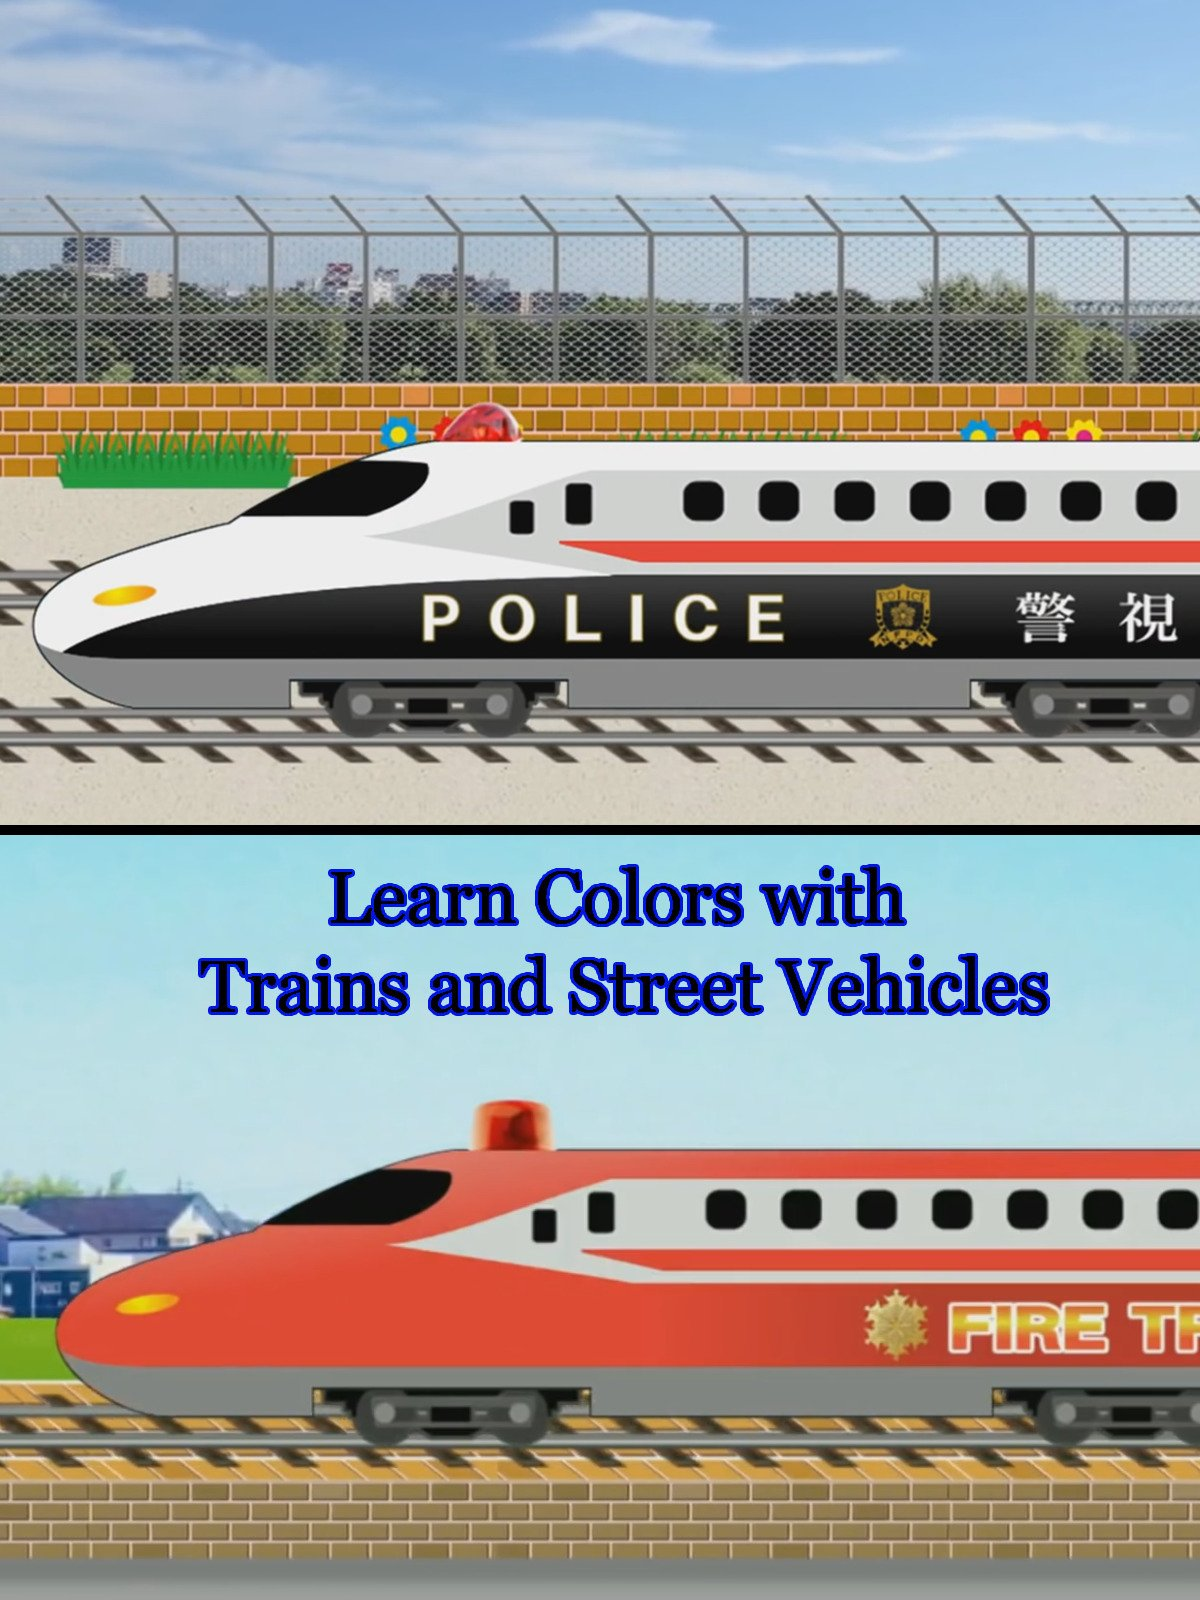 Learn Colors with Trains and Street Vehicles